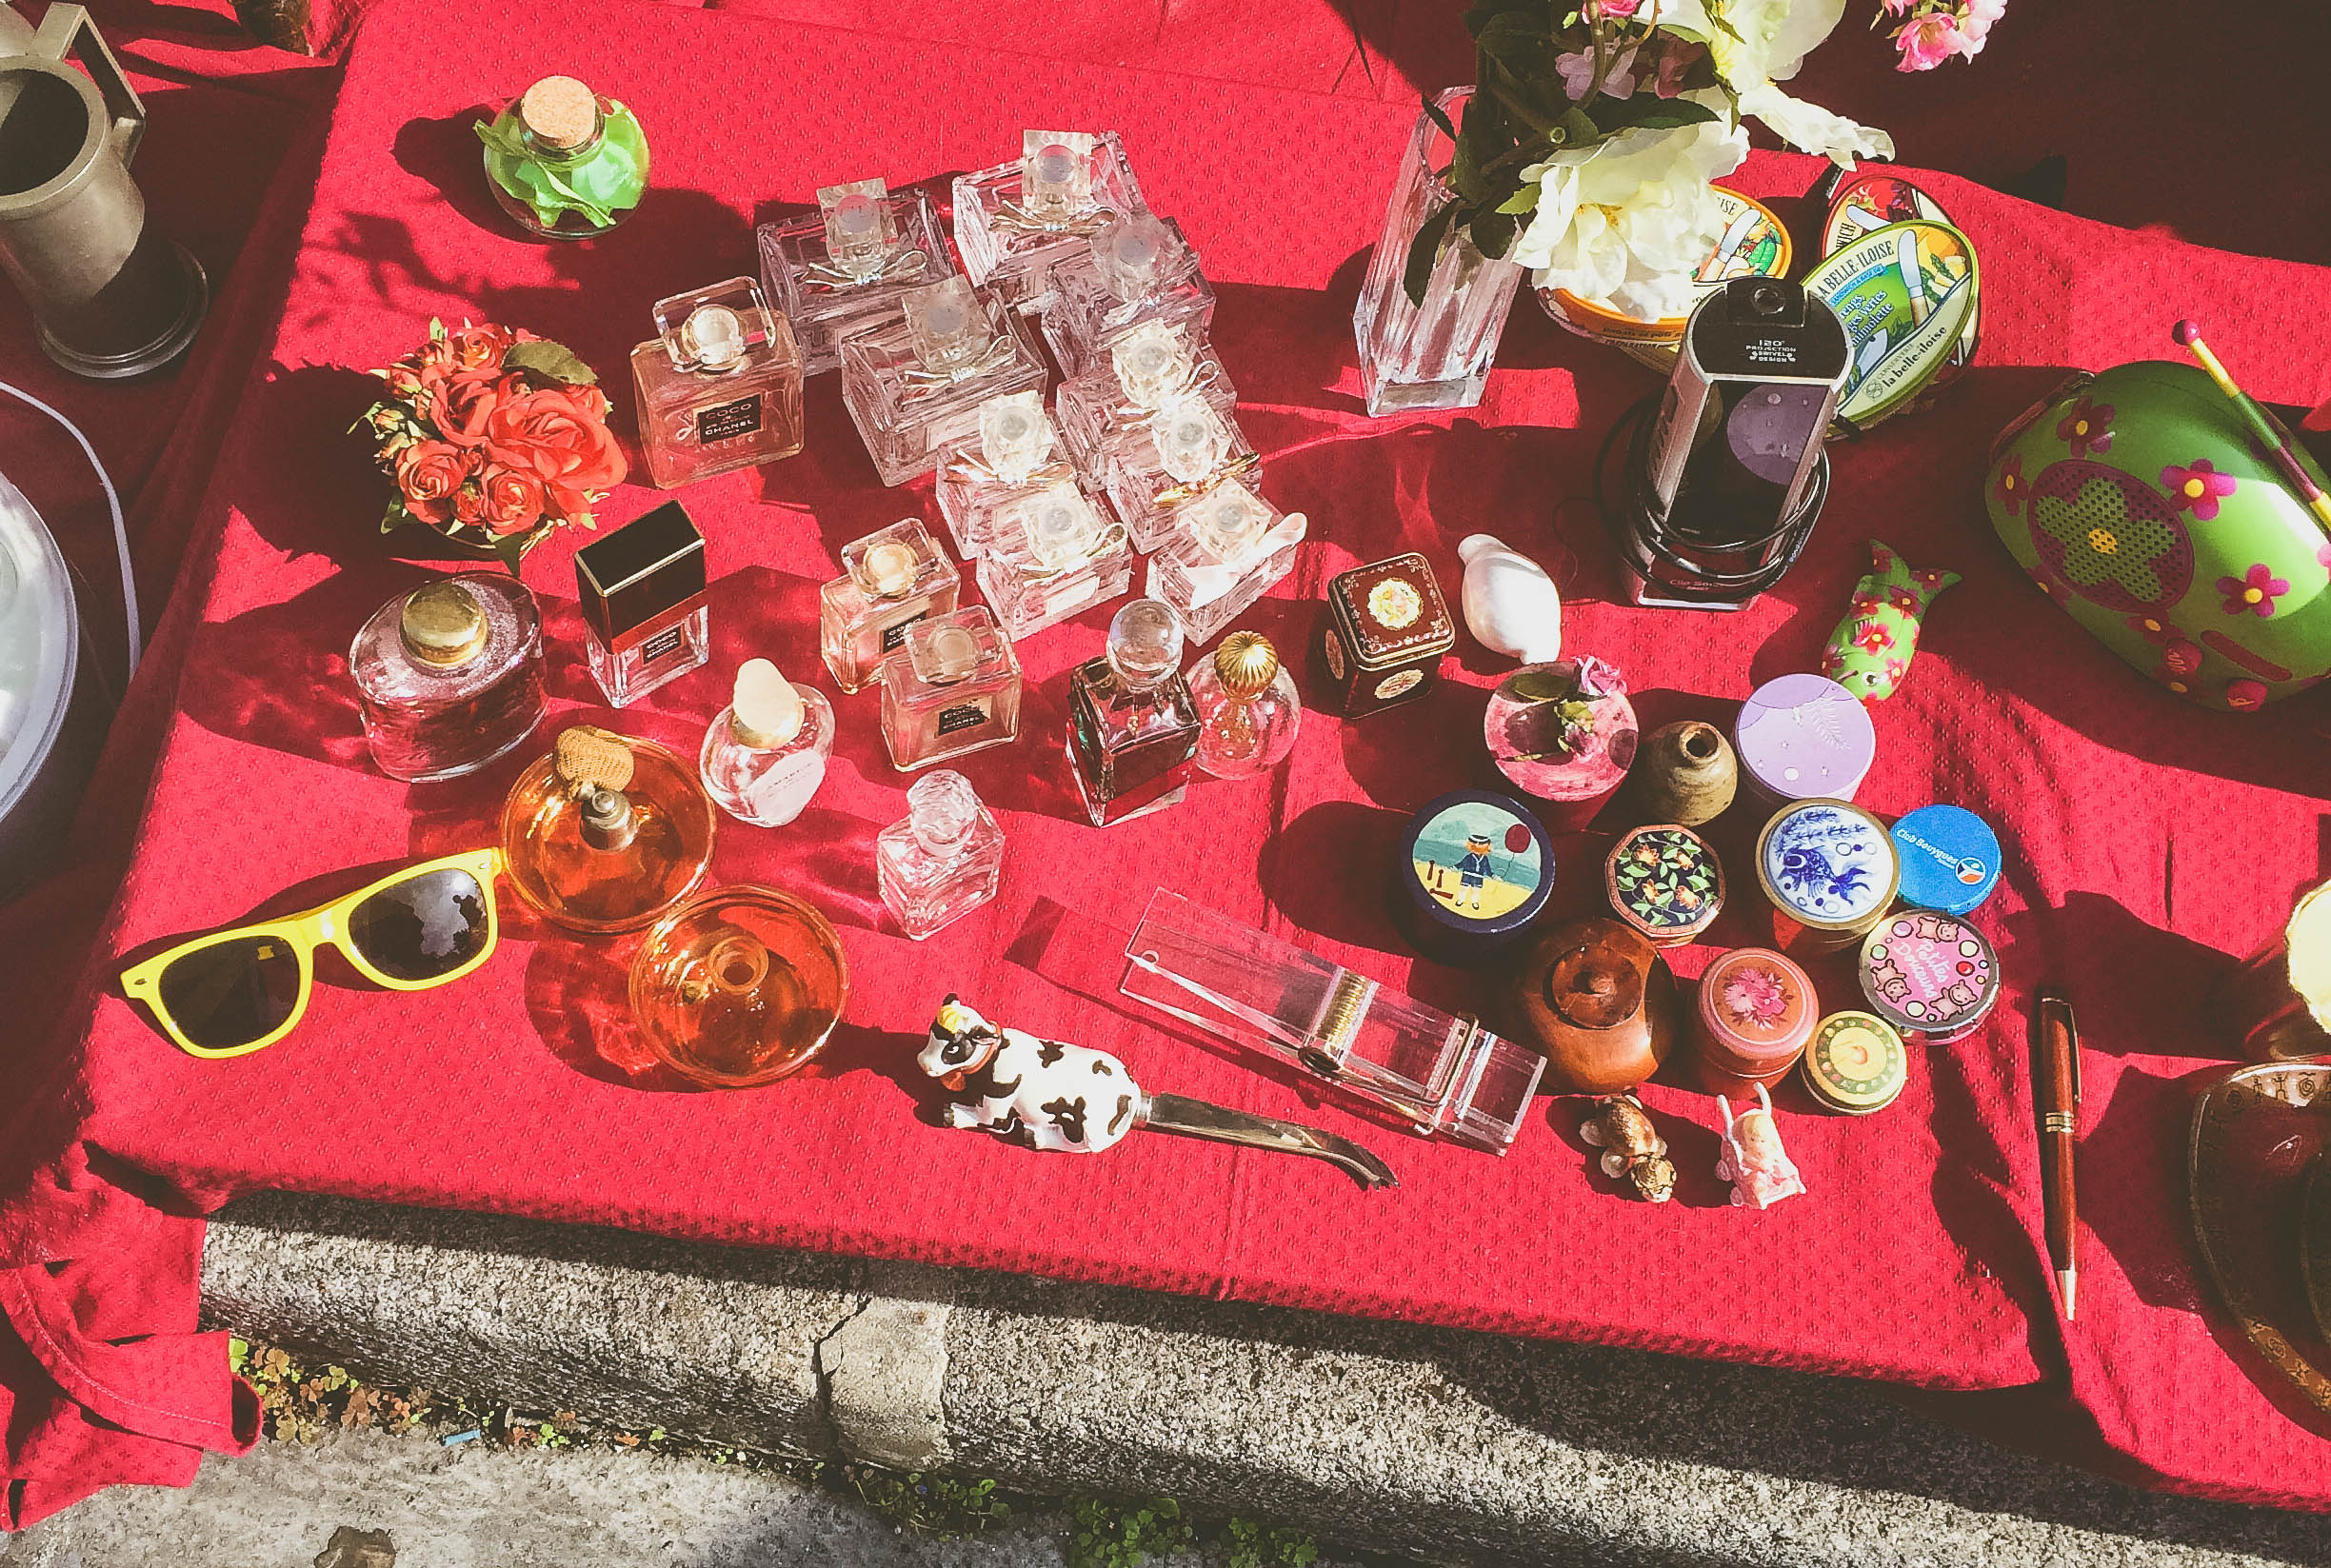 Parisian yard sale: old perfume bottles and pill boxes.